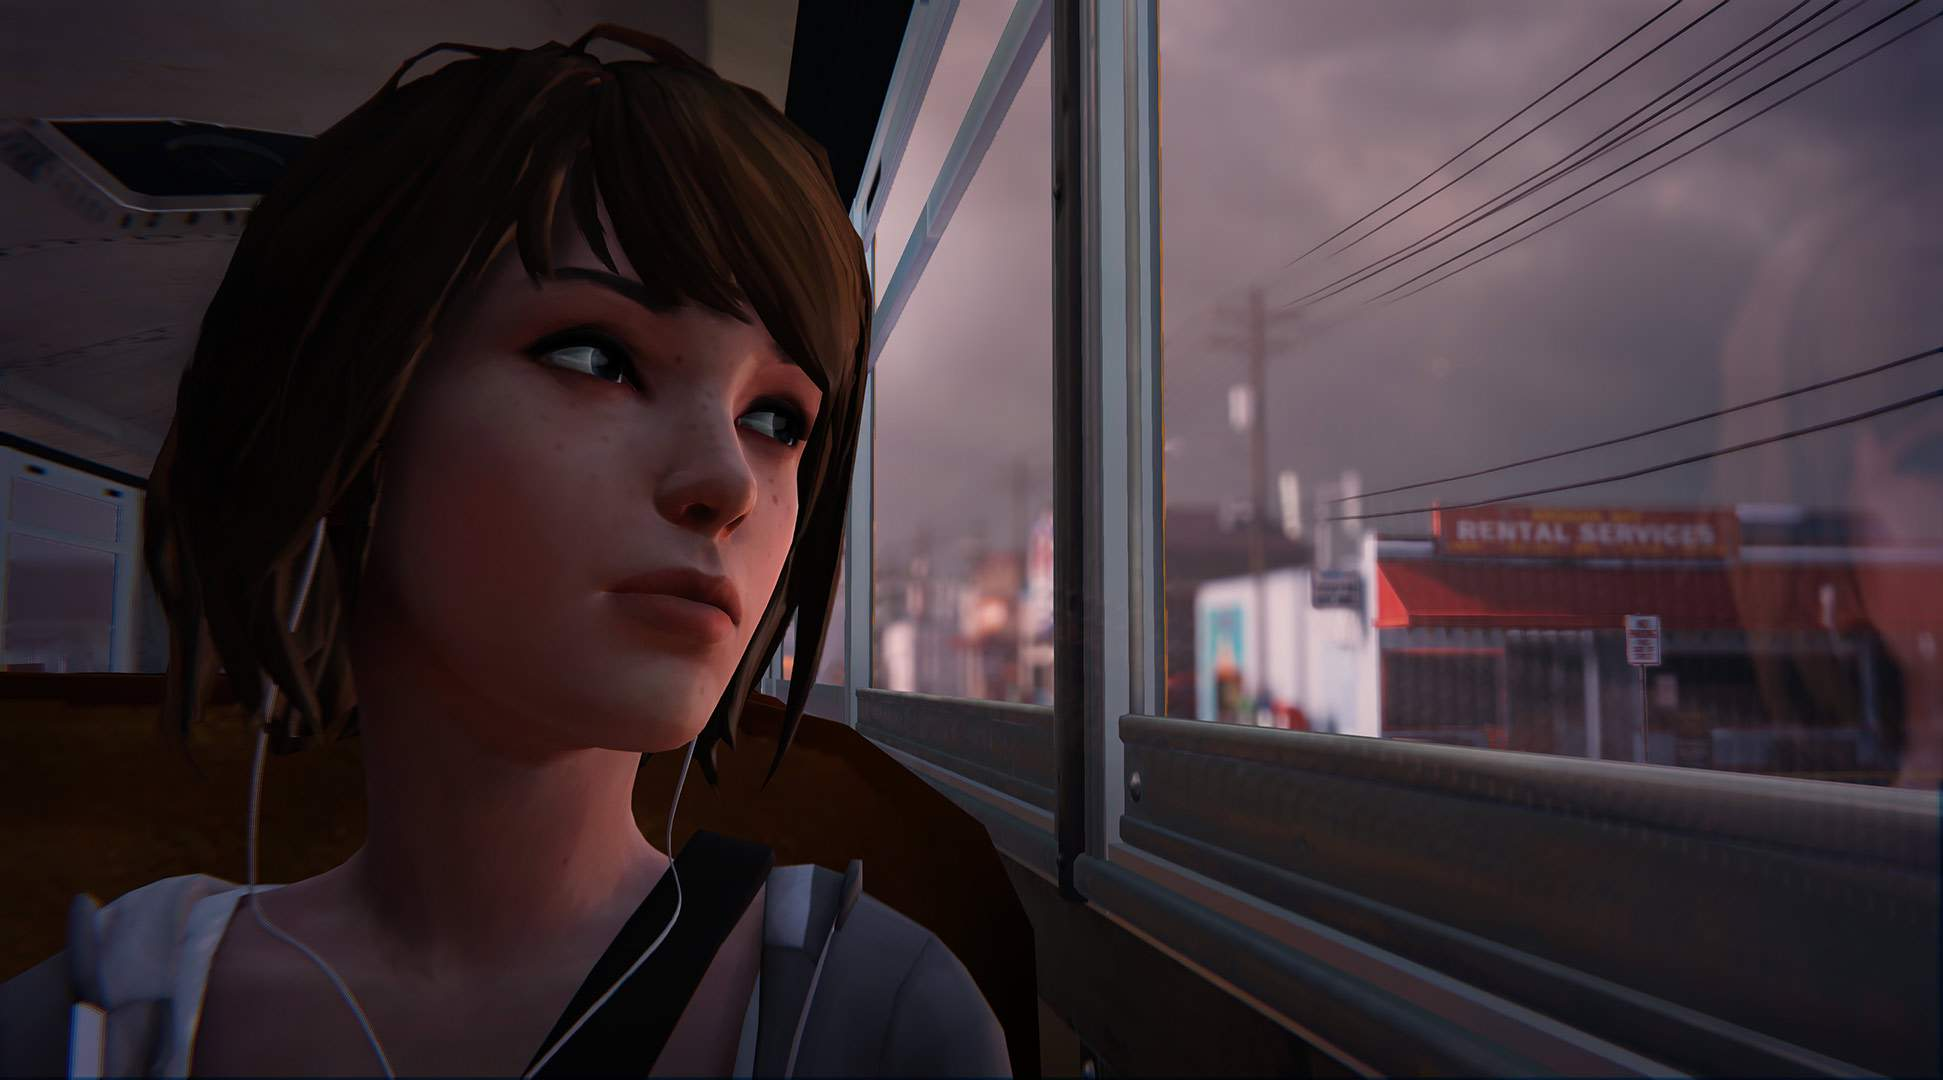 Her headphones in, Max rides the bus through Arcadia Bay, gazing out of the window at the gathering stormclouds.